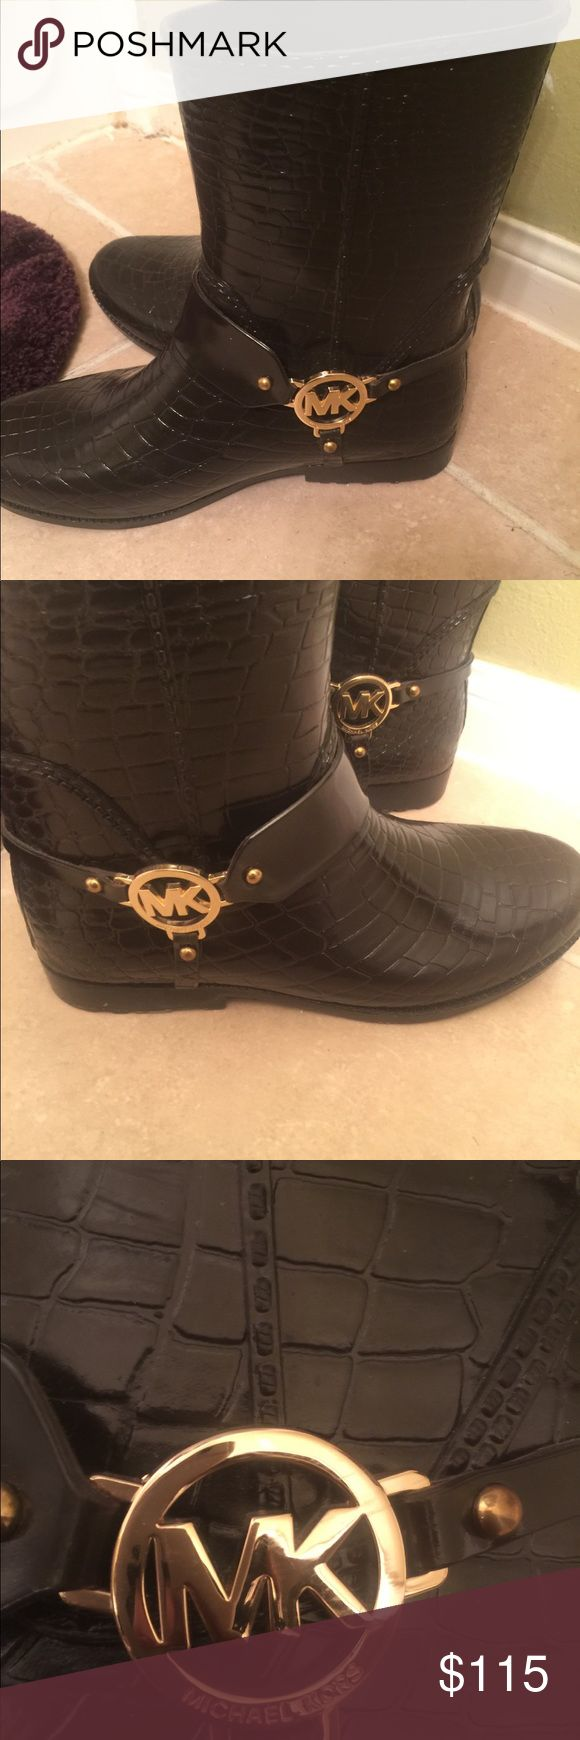 Micheal Kors Rain Boots Authentic MK raining boots !! Boots would make a good Christmas present . Perfect boots for the winter time Michael Kors Shoes Winter & Rain Boots